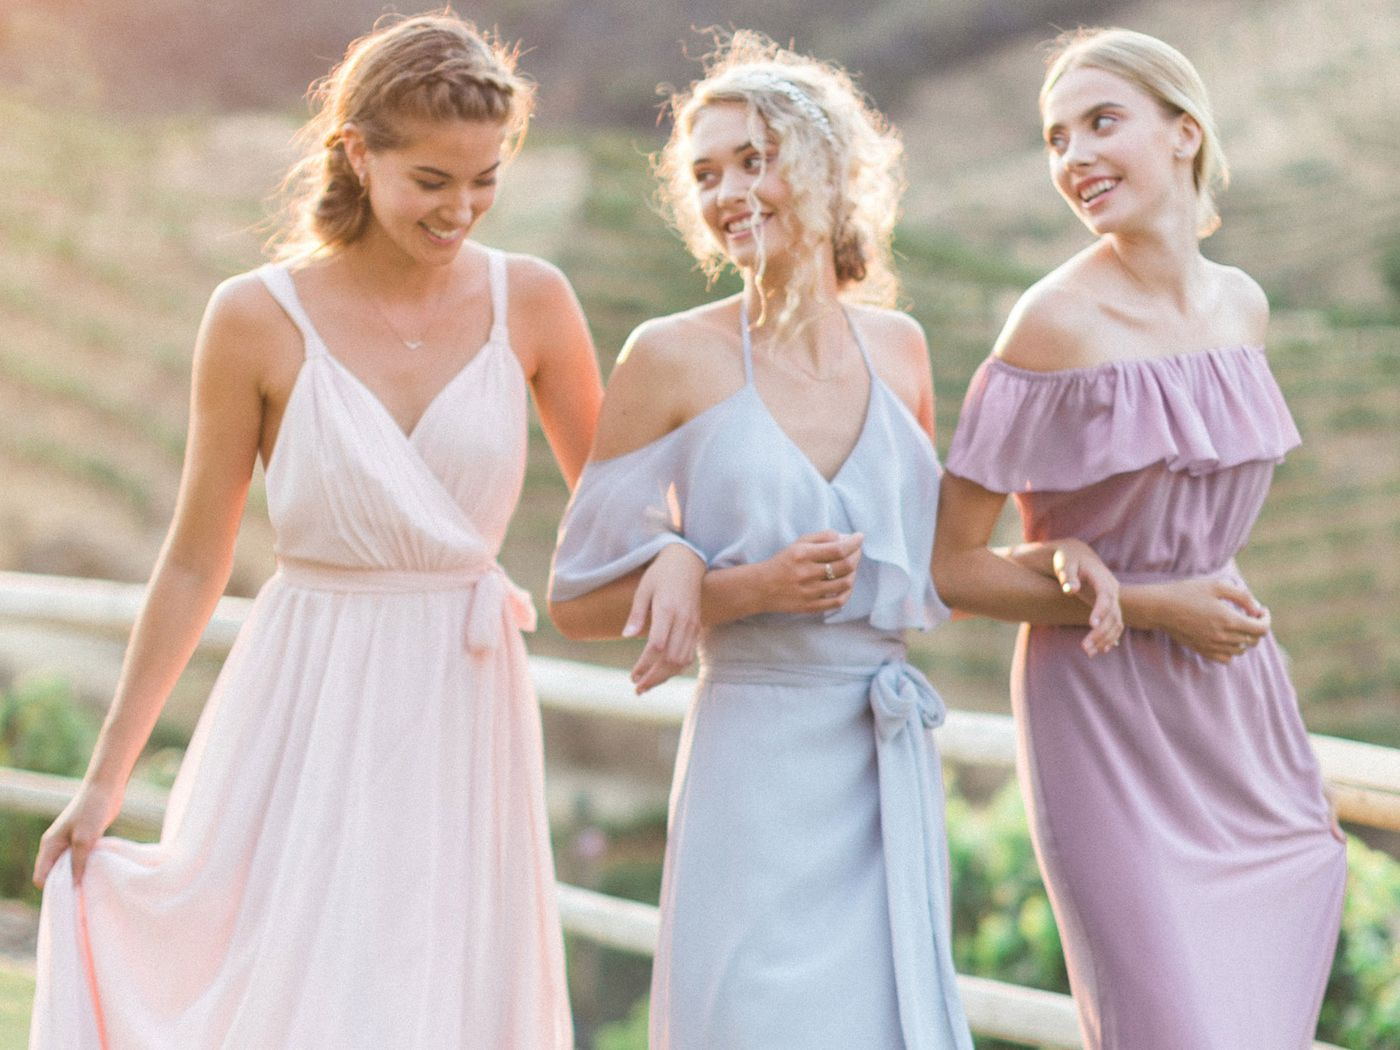 5bc18dcffe Where to Buy Bridesmaid Dresses Online - Vox